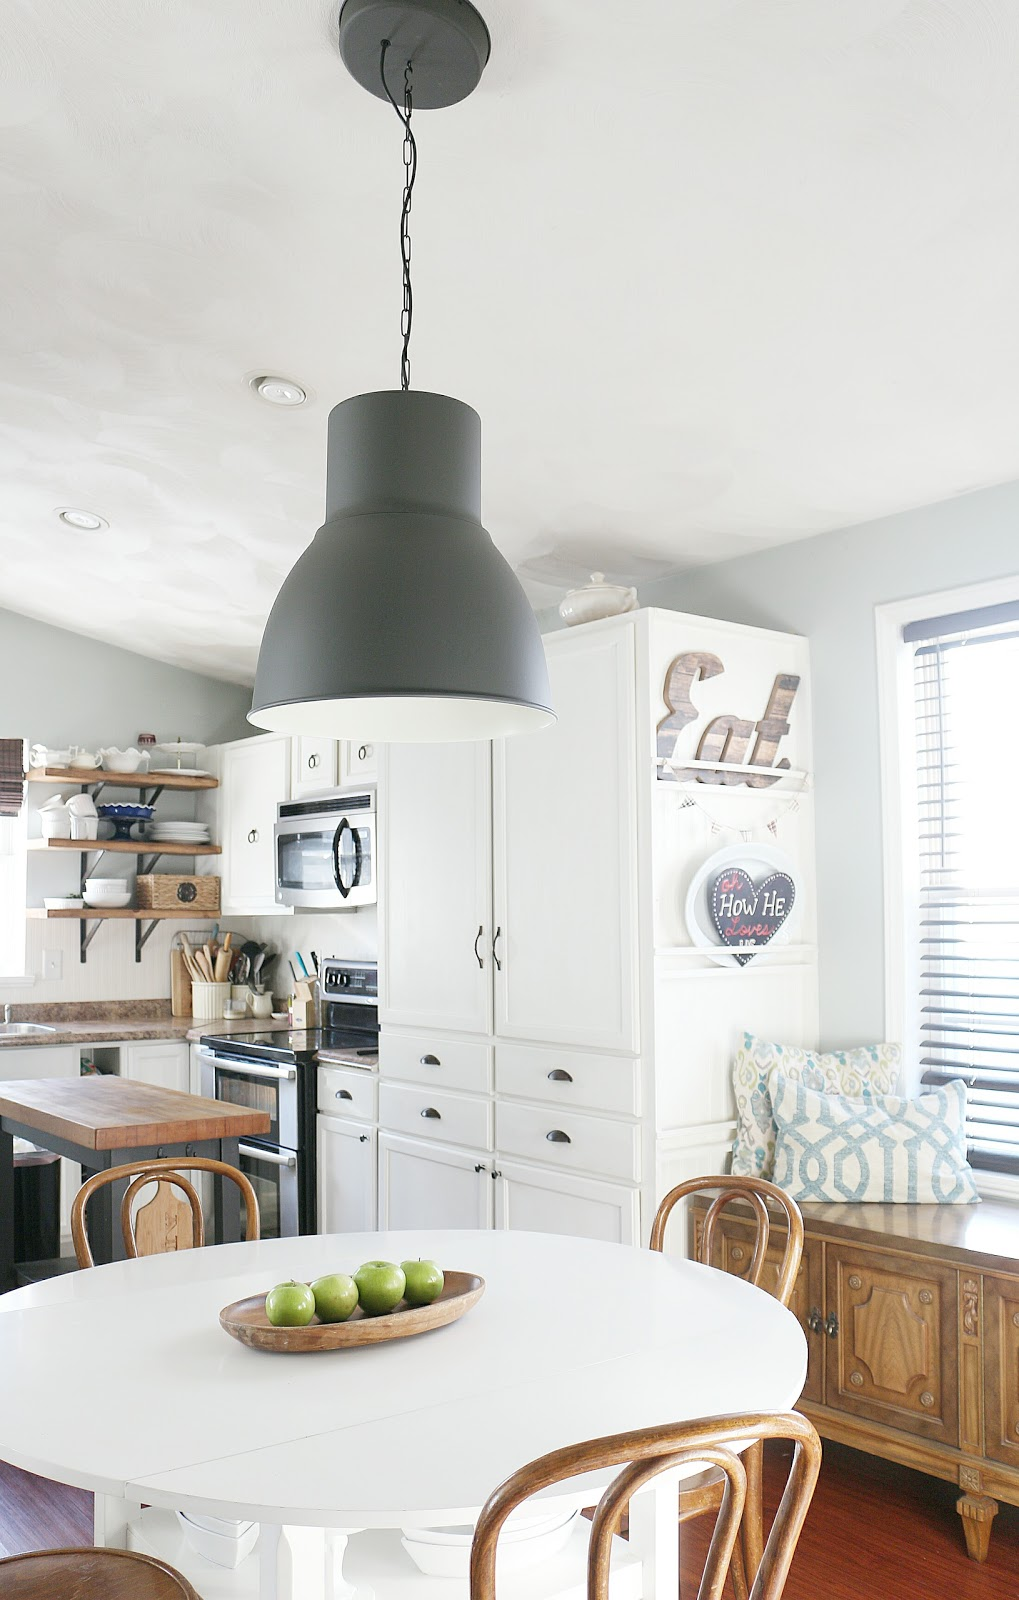 ikea hektar lighting in eat in kitchen